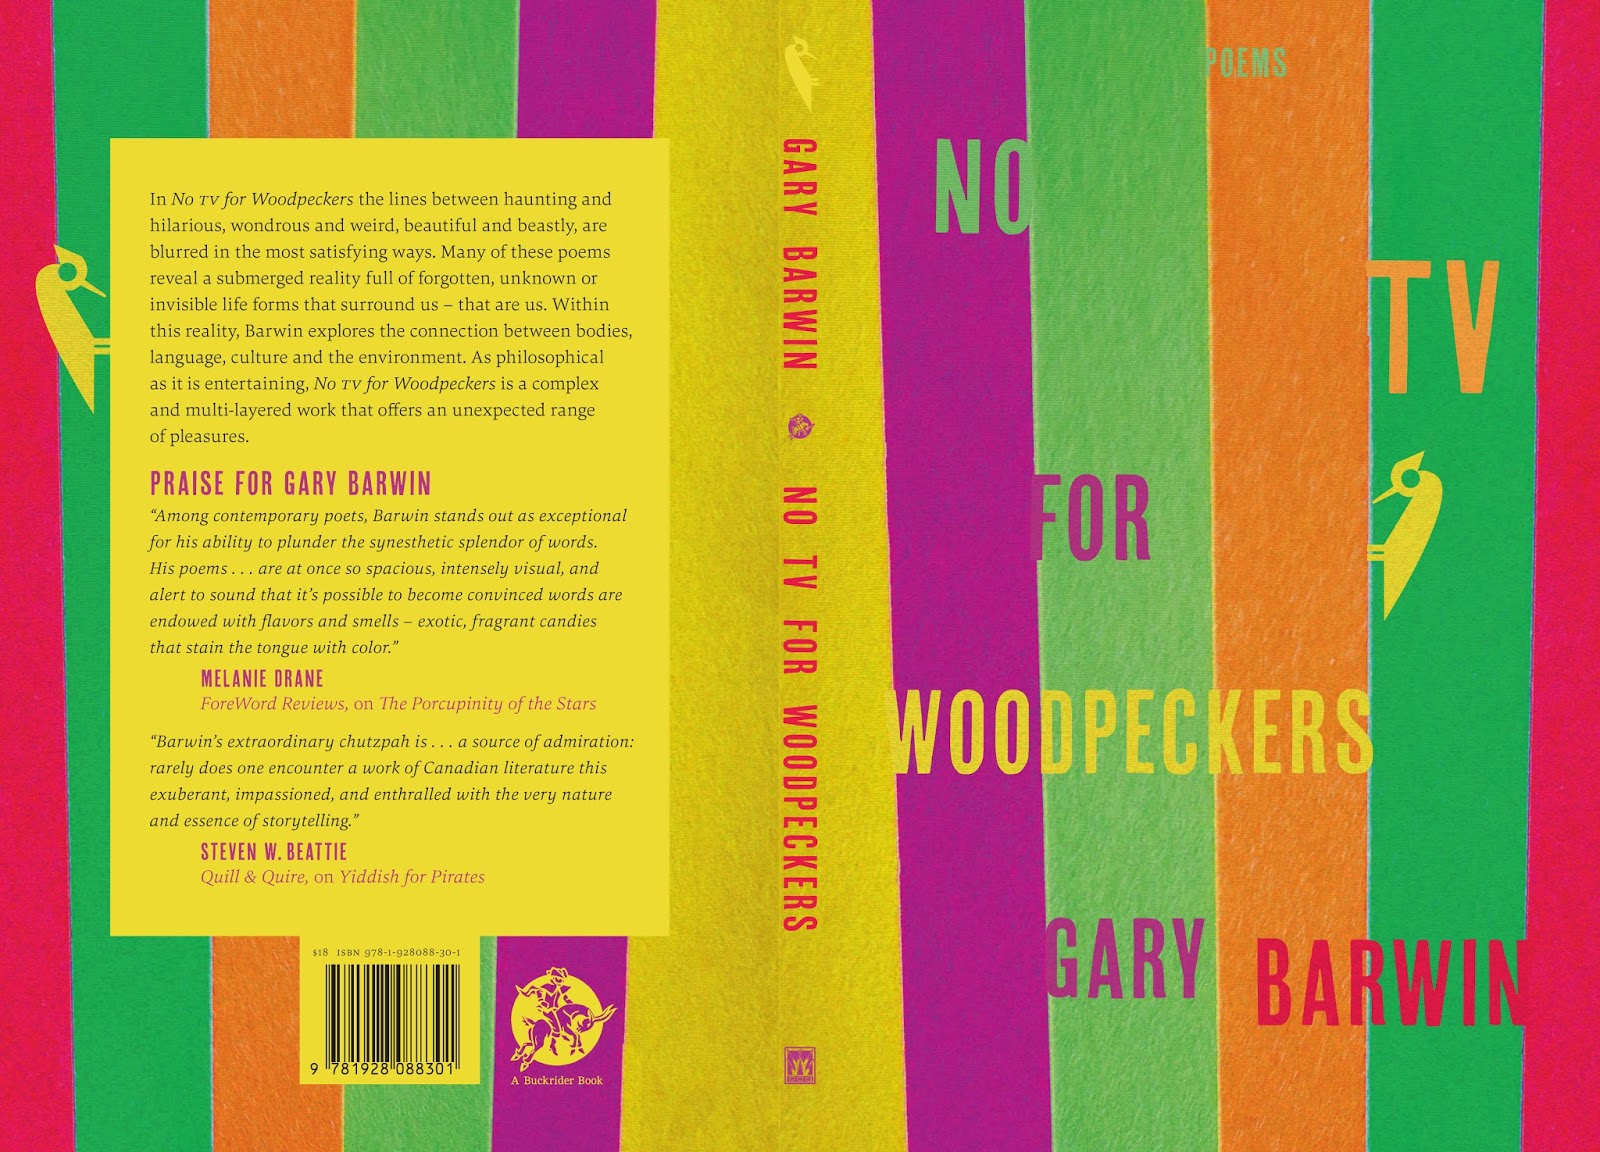 Rob mclennans blog gary barwin no tv for woodpeckers after the initial sonnet no tv for woodpeckers moves into a small handful of poems playing off rural or small town field guides including fandeluxe Gallery